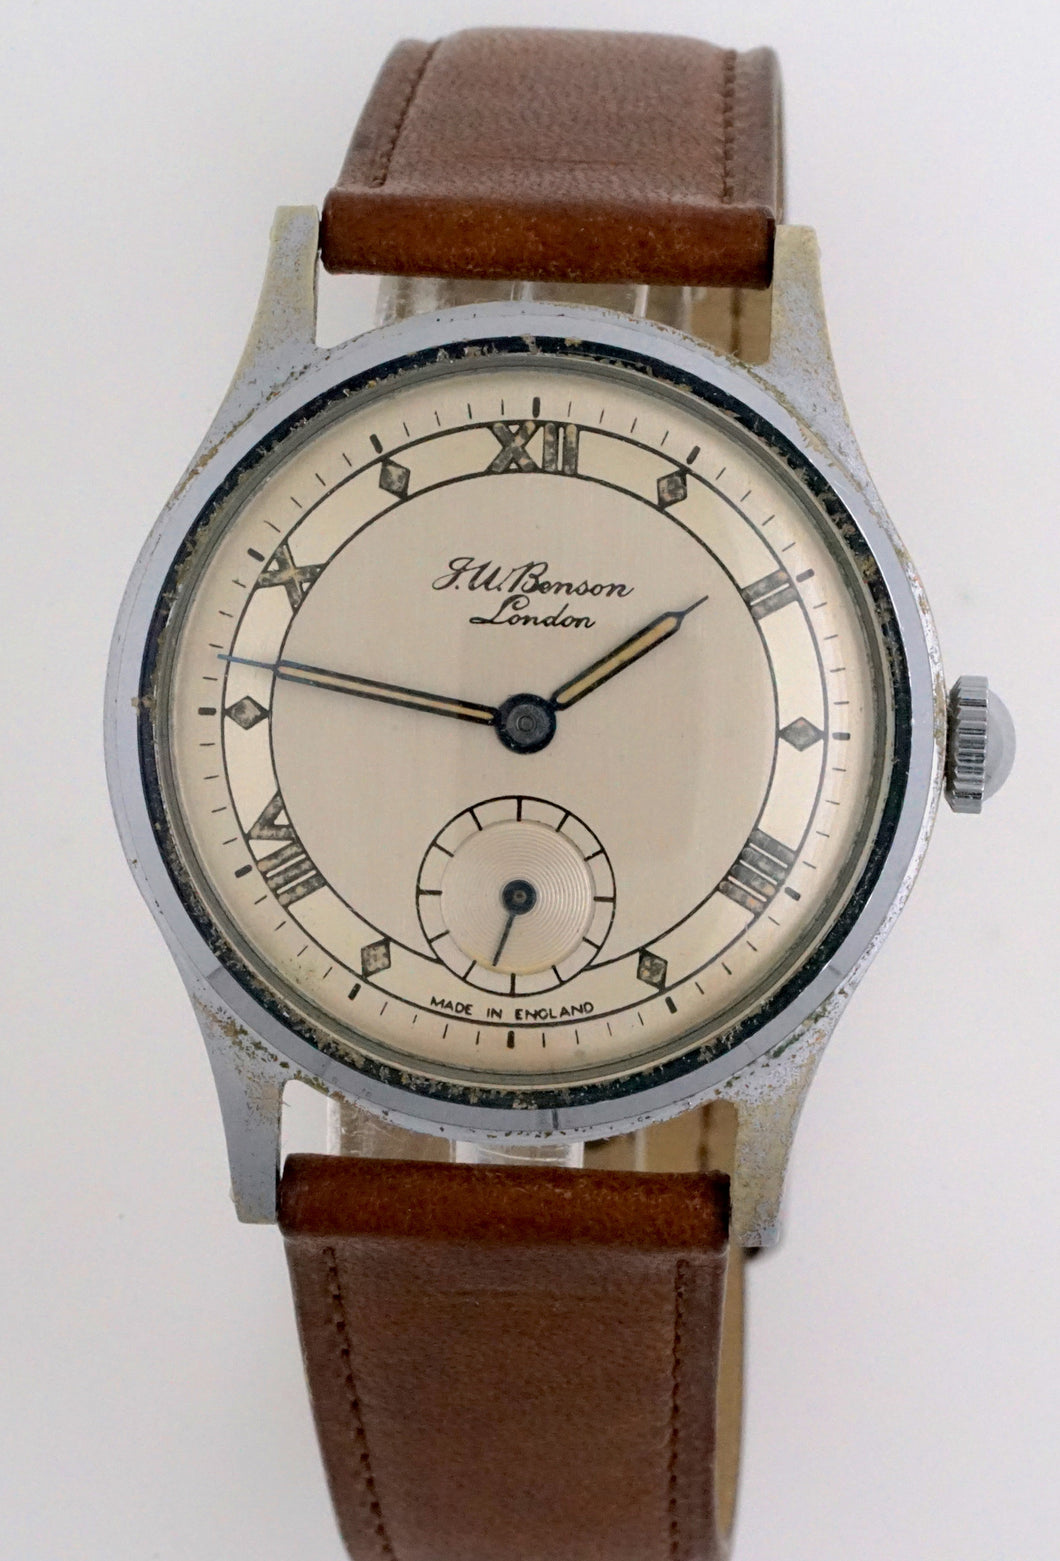 J W BENSON LONDON SMITHS MADE IN ENGLAND ROMAN NUMERAL DIAL DENNISON AQUATITE CASE C 1953 3